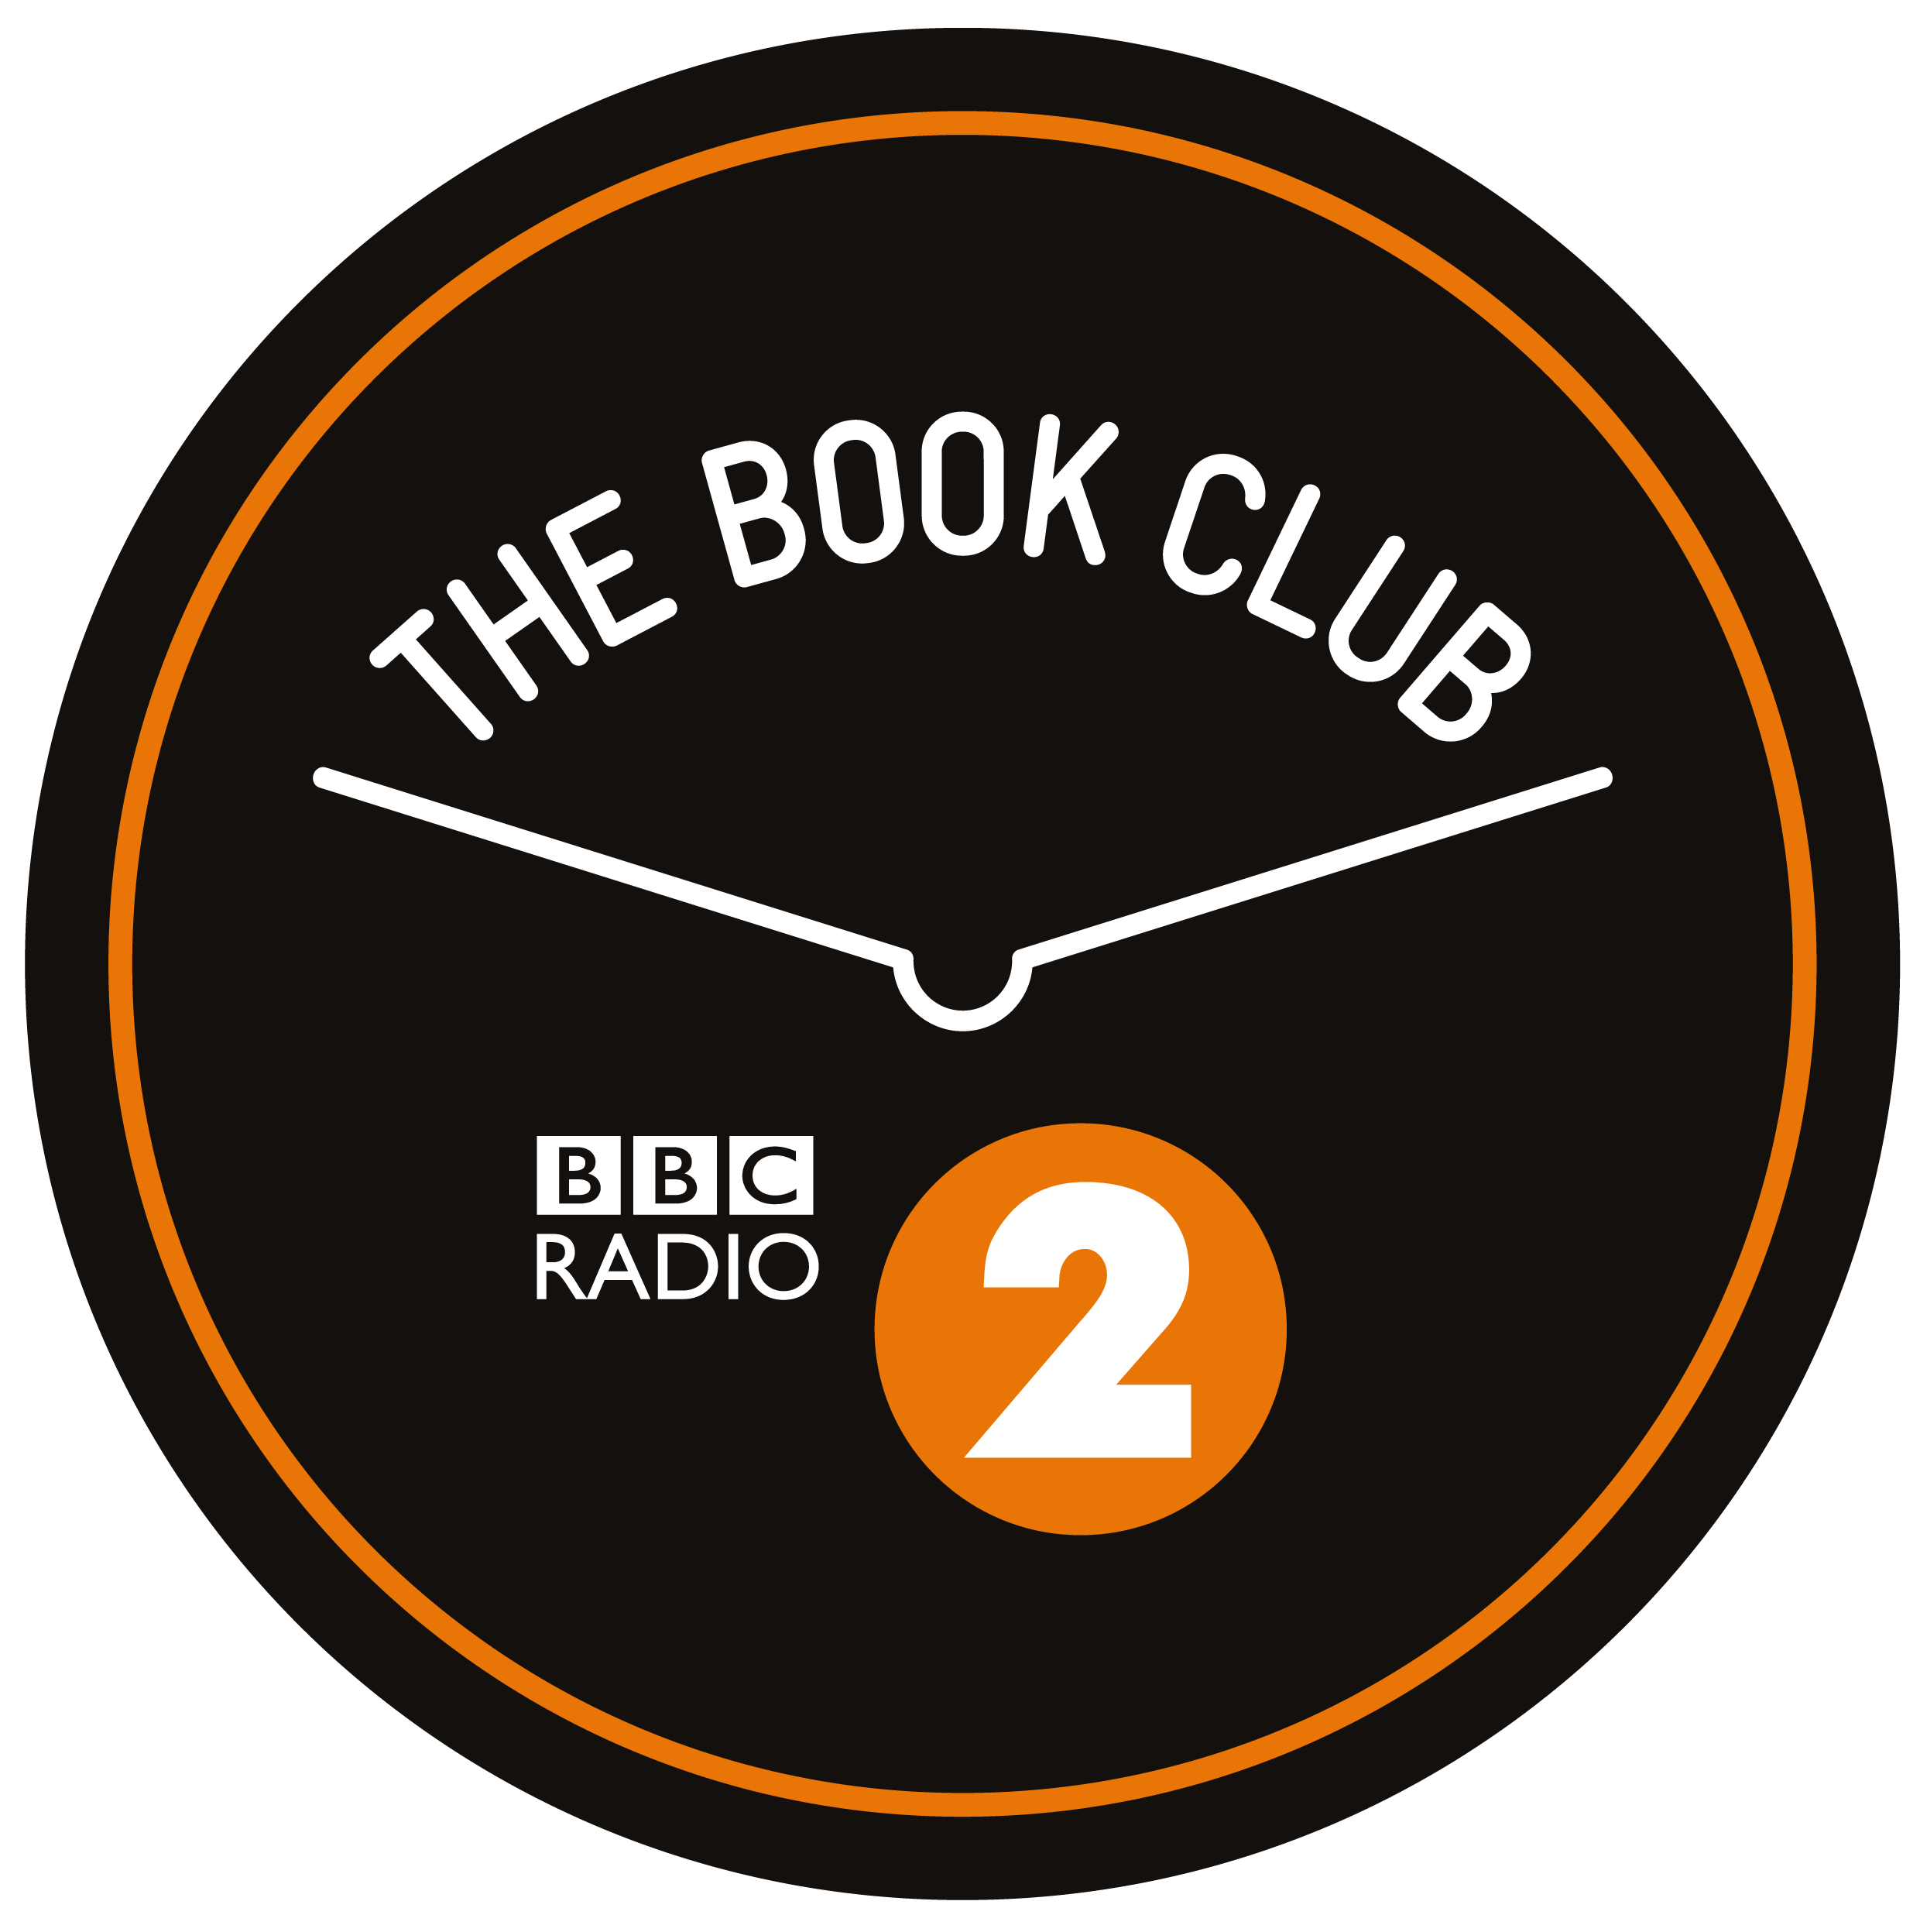 ... been working with Radio 2 to select books for the Radio 2 Book Club